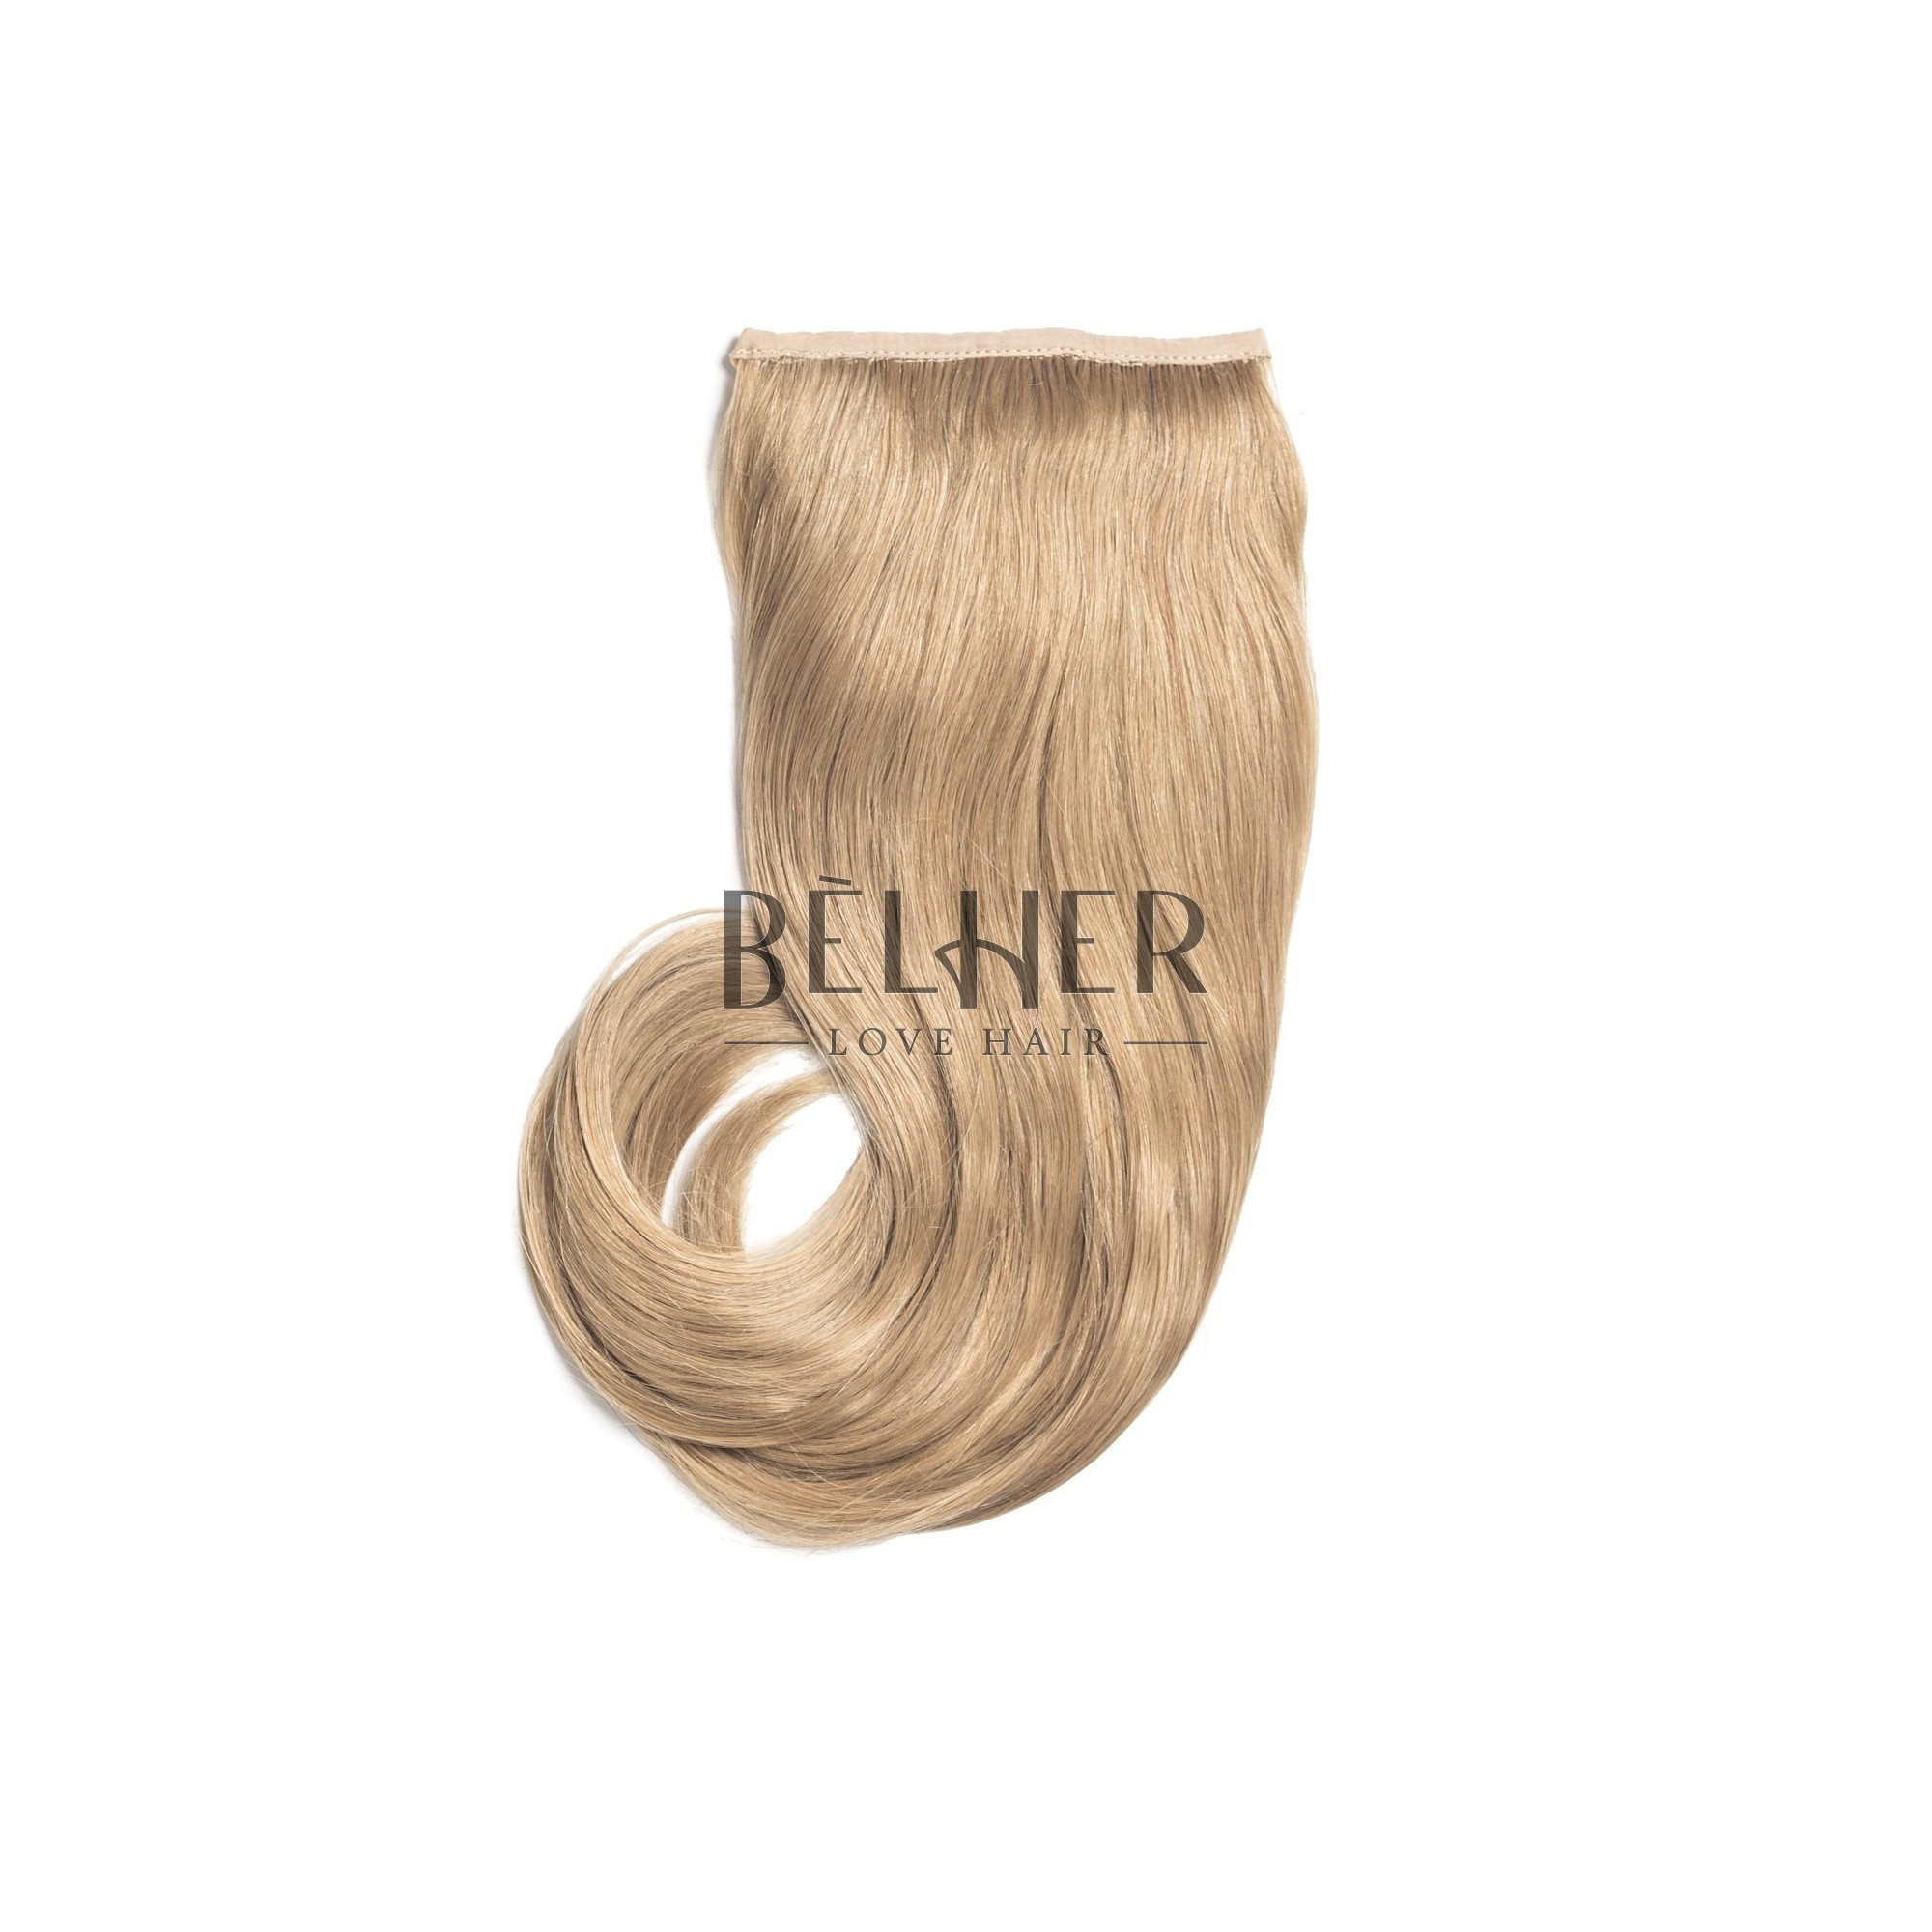 Coada Naturala Retro Blond Aluna